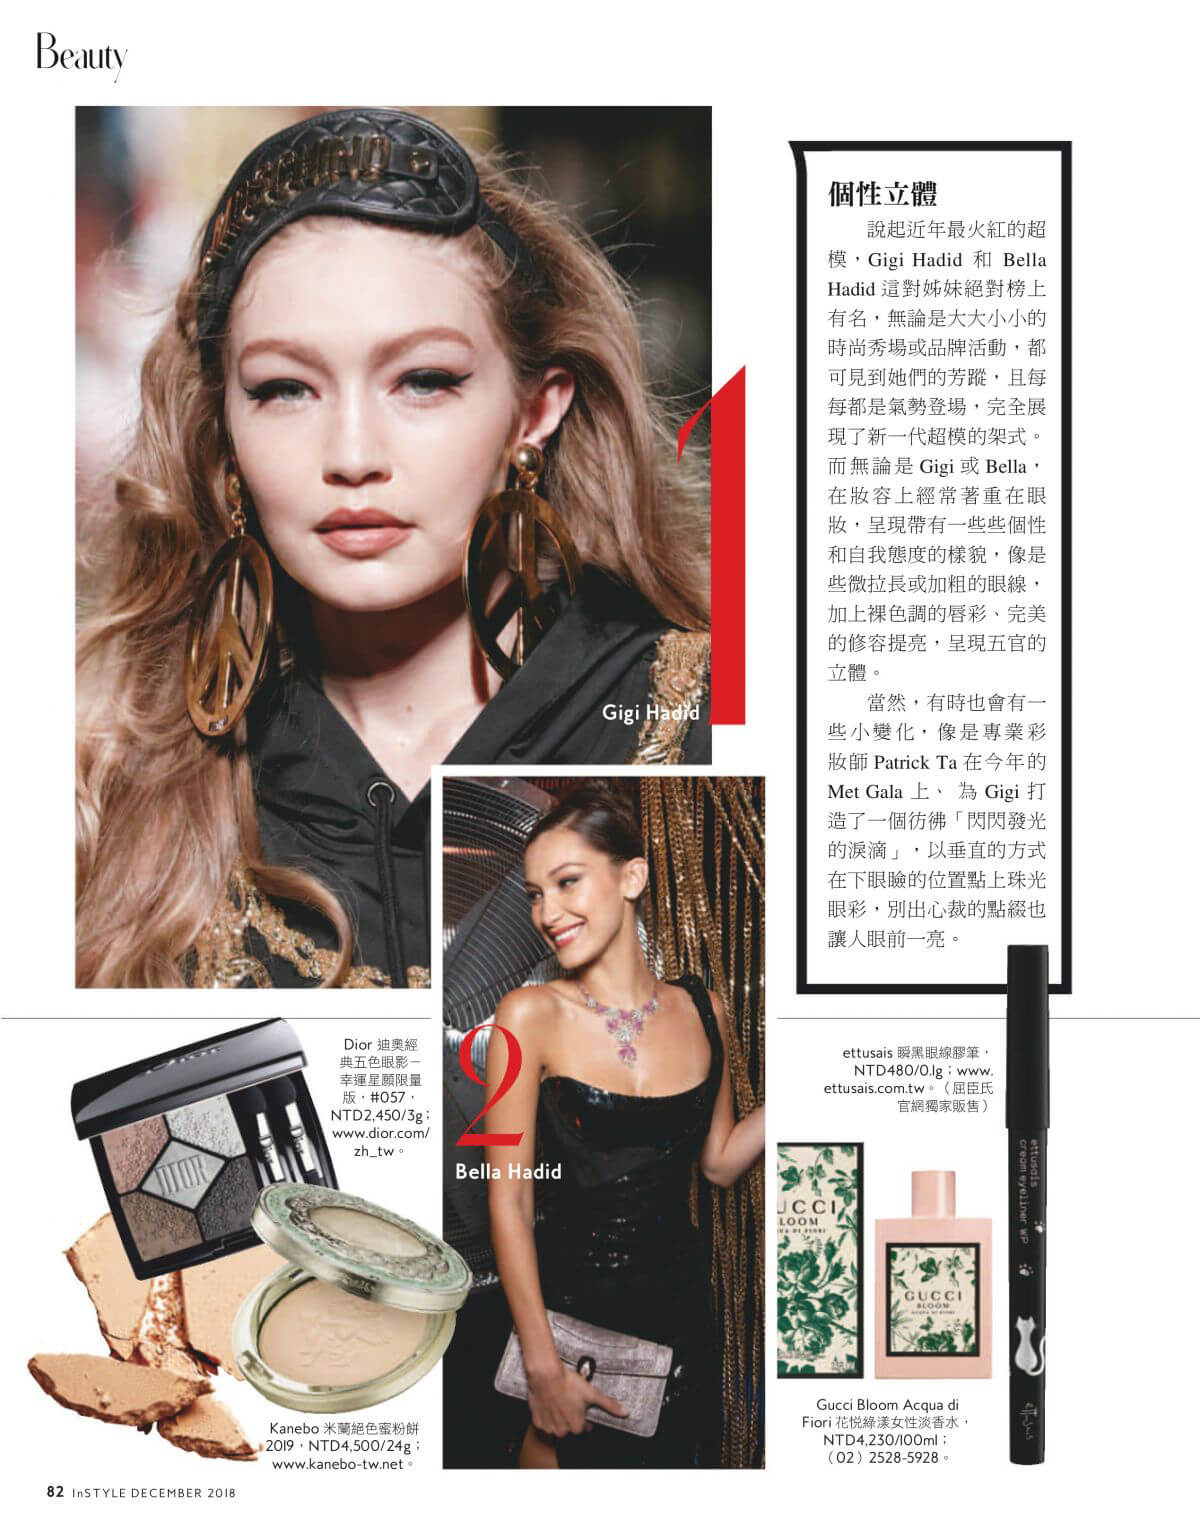 Bella and Gigi Hadid in Instyle Magazine, Taiwan December 2018 1